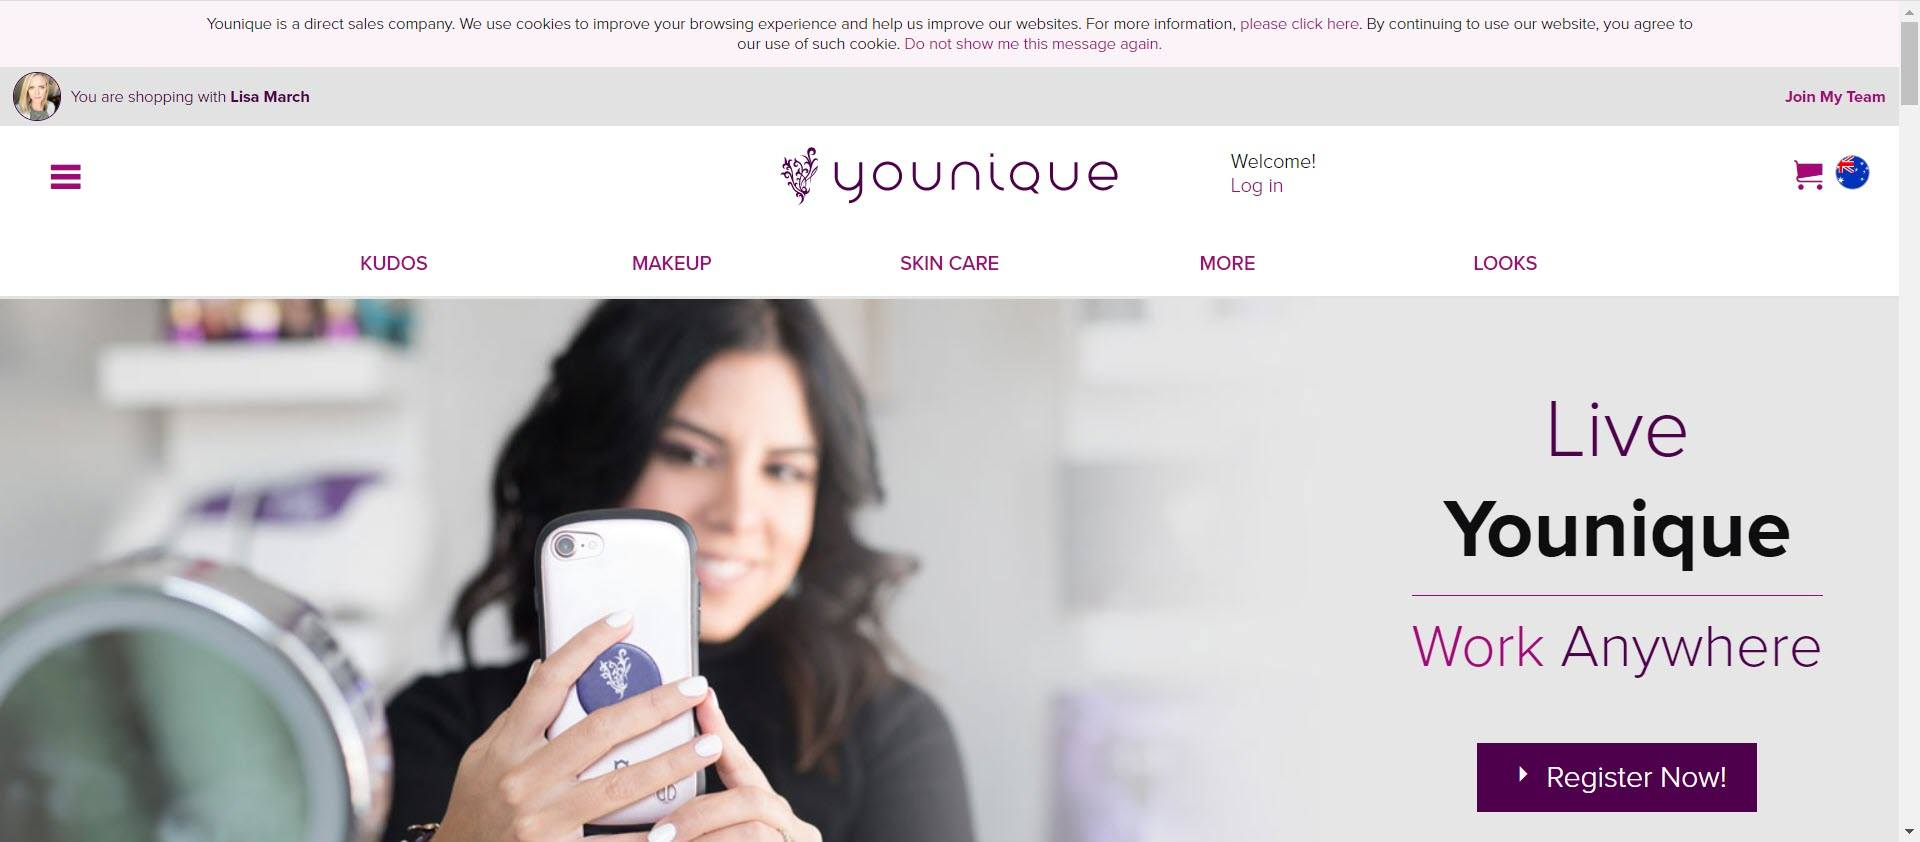 younique MLM review - opportunity